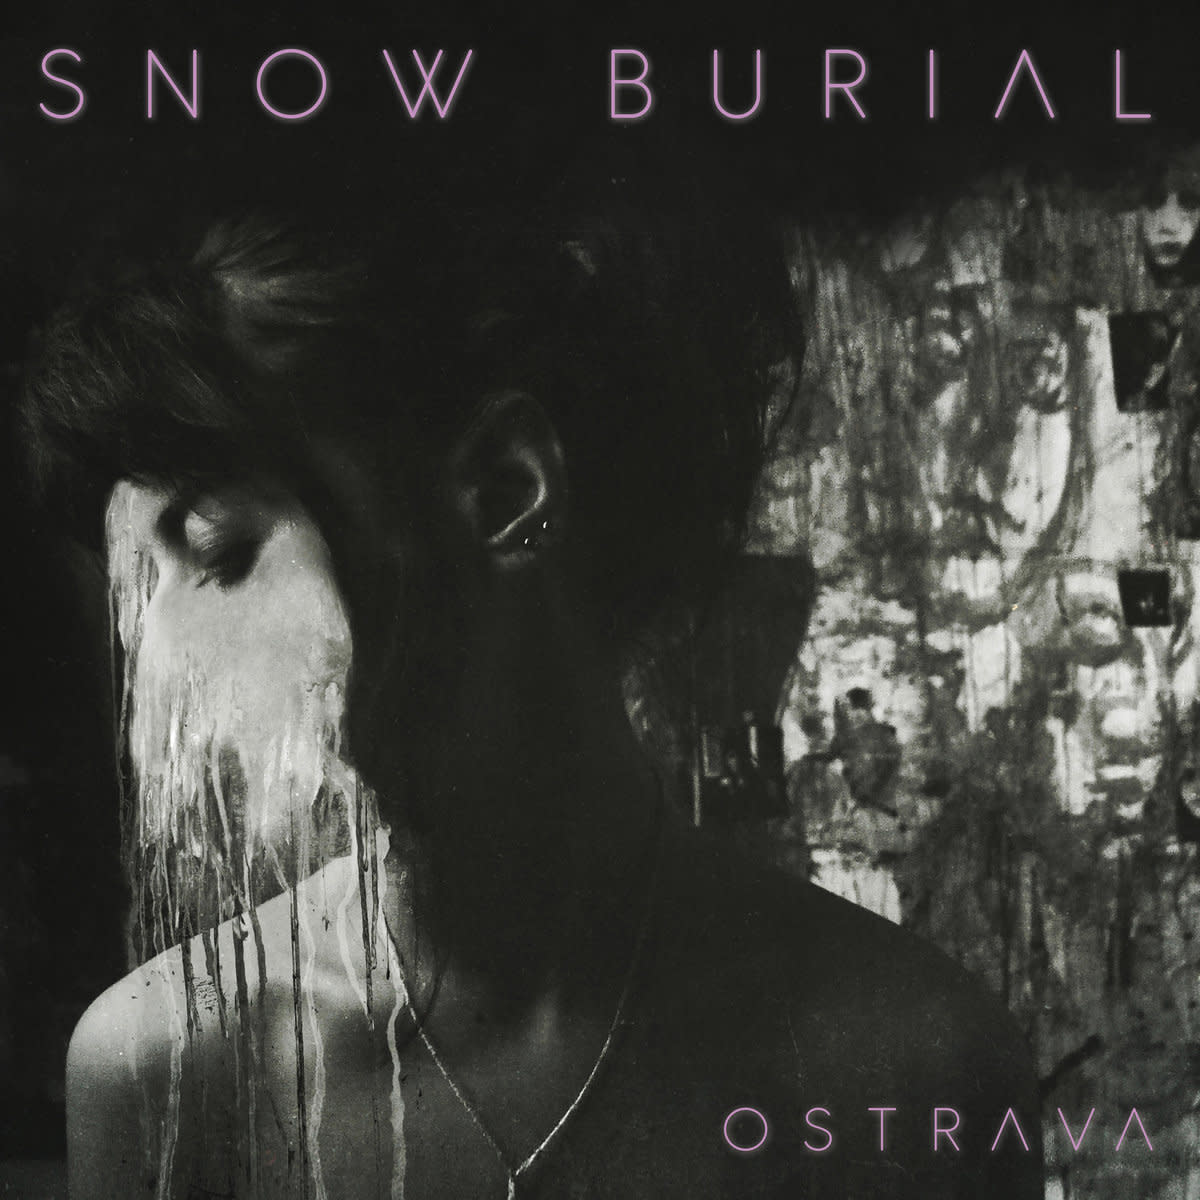 Ostrava, the new album by Snow Burial